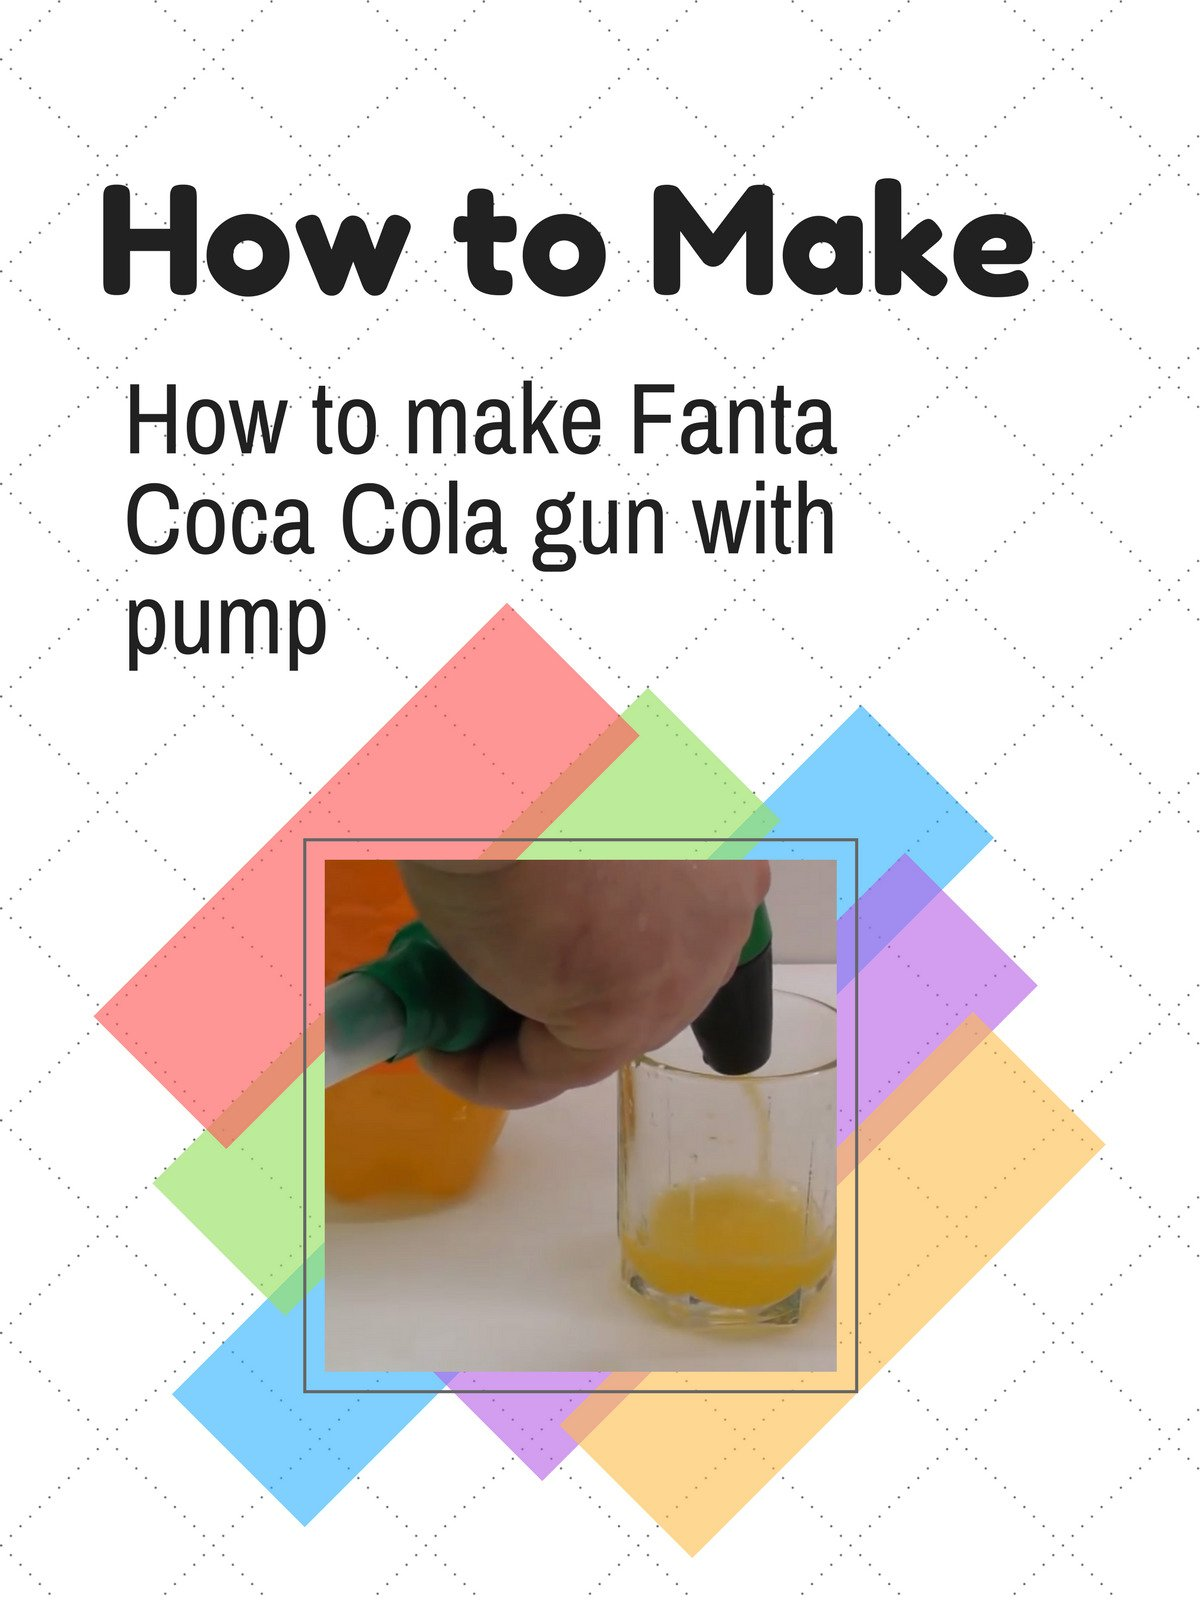 How to make Fanta Coca Cola gun with pump